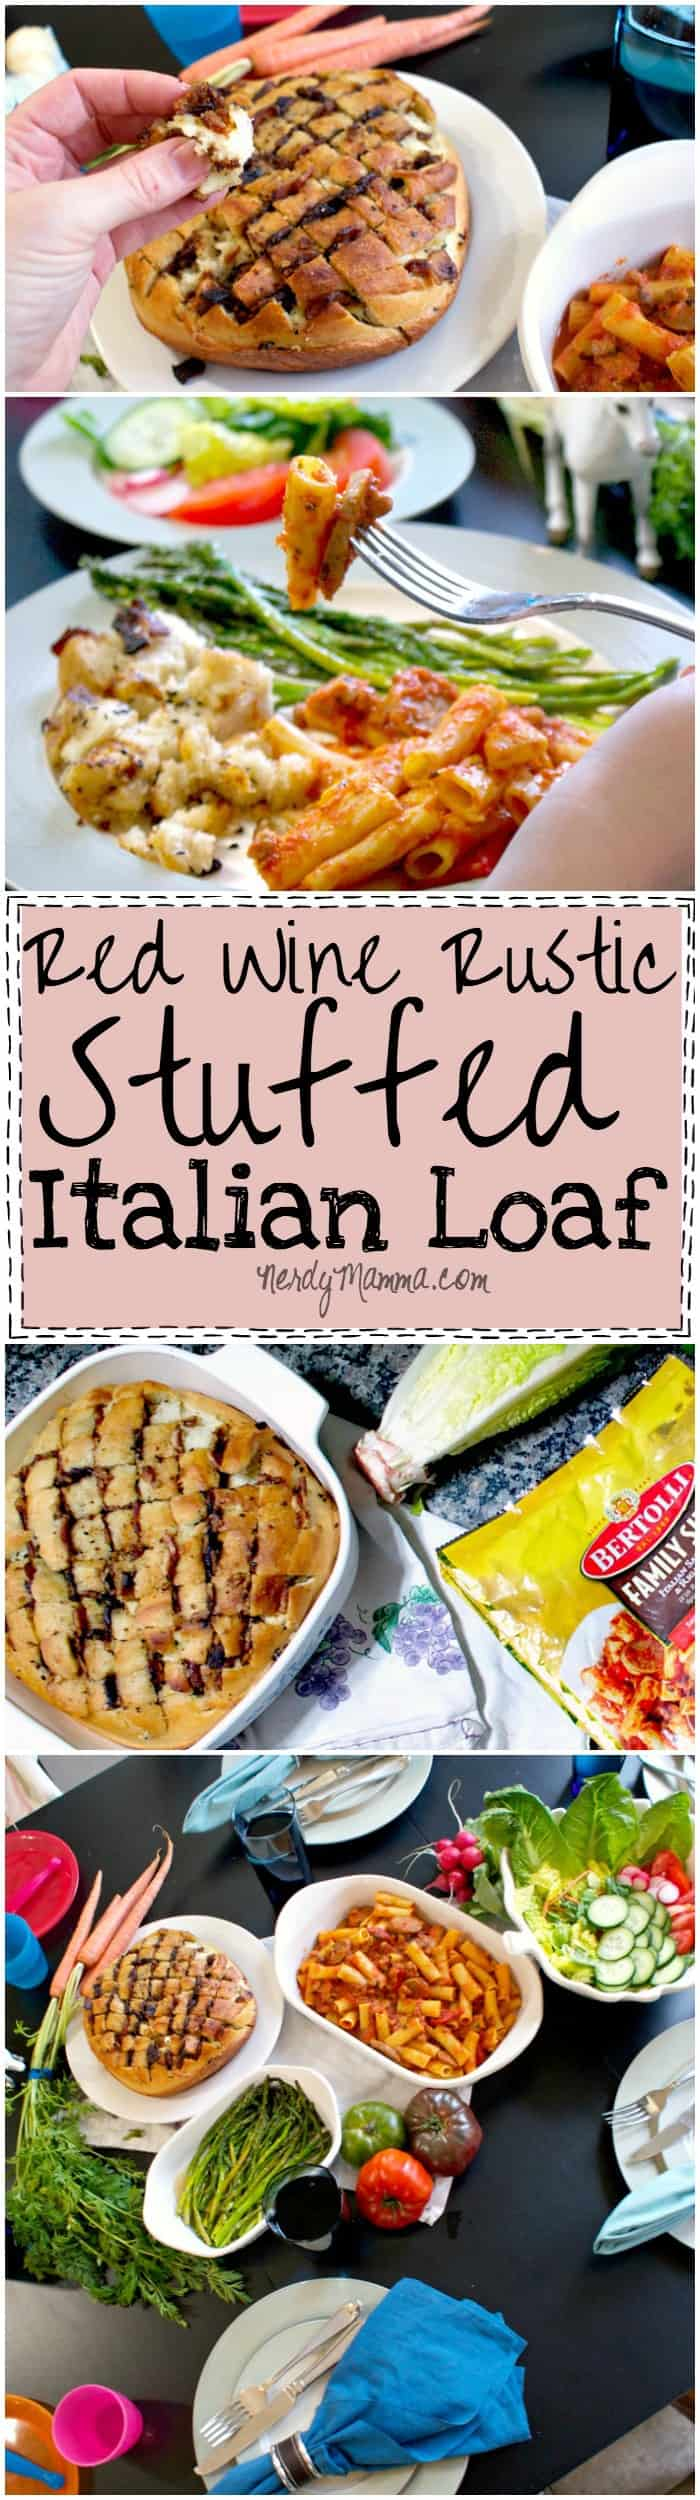 This recipe for this bacon and cheese stuffed red wine rustic Italian bread is amazing. I mean, mozzarella, candied bacon and garlic! LOVE!